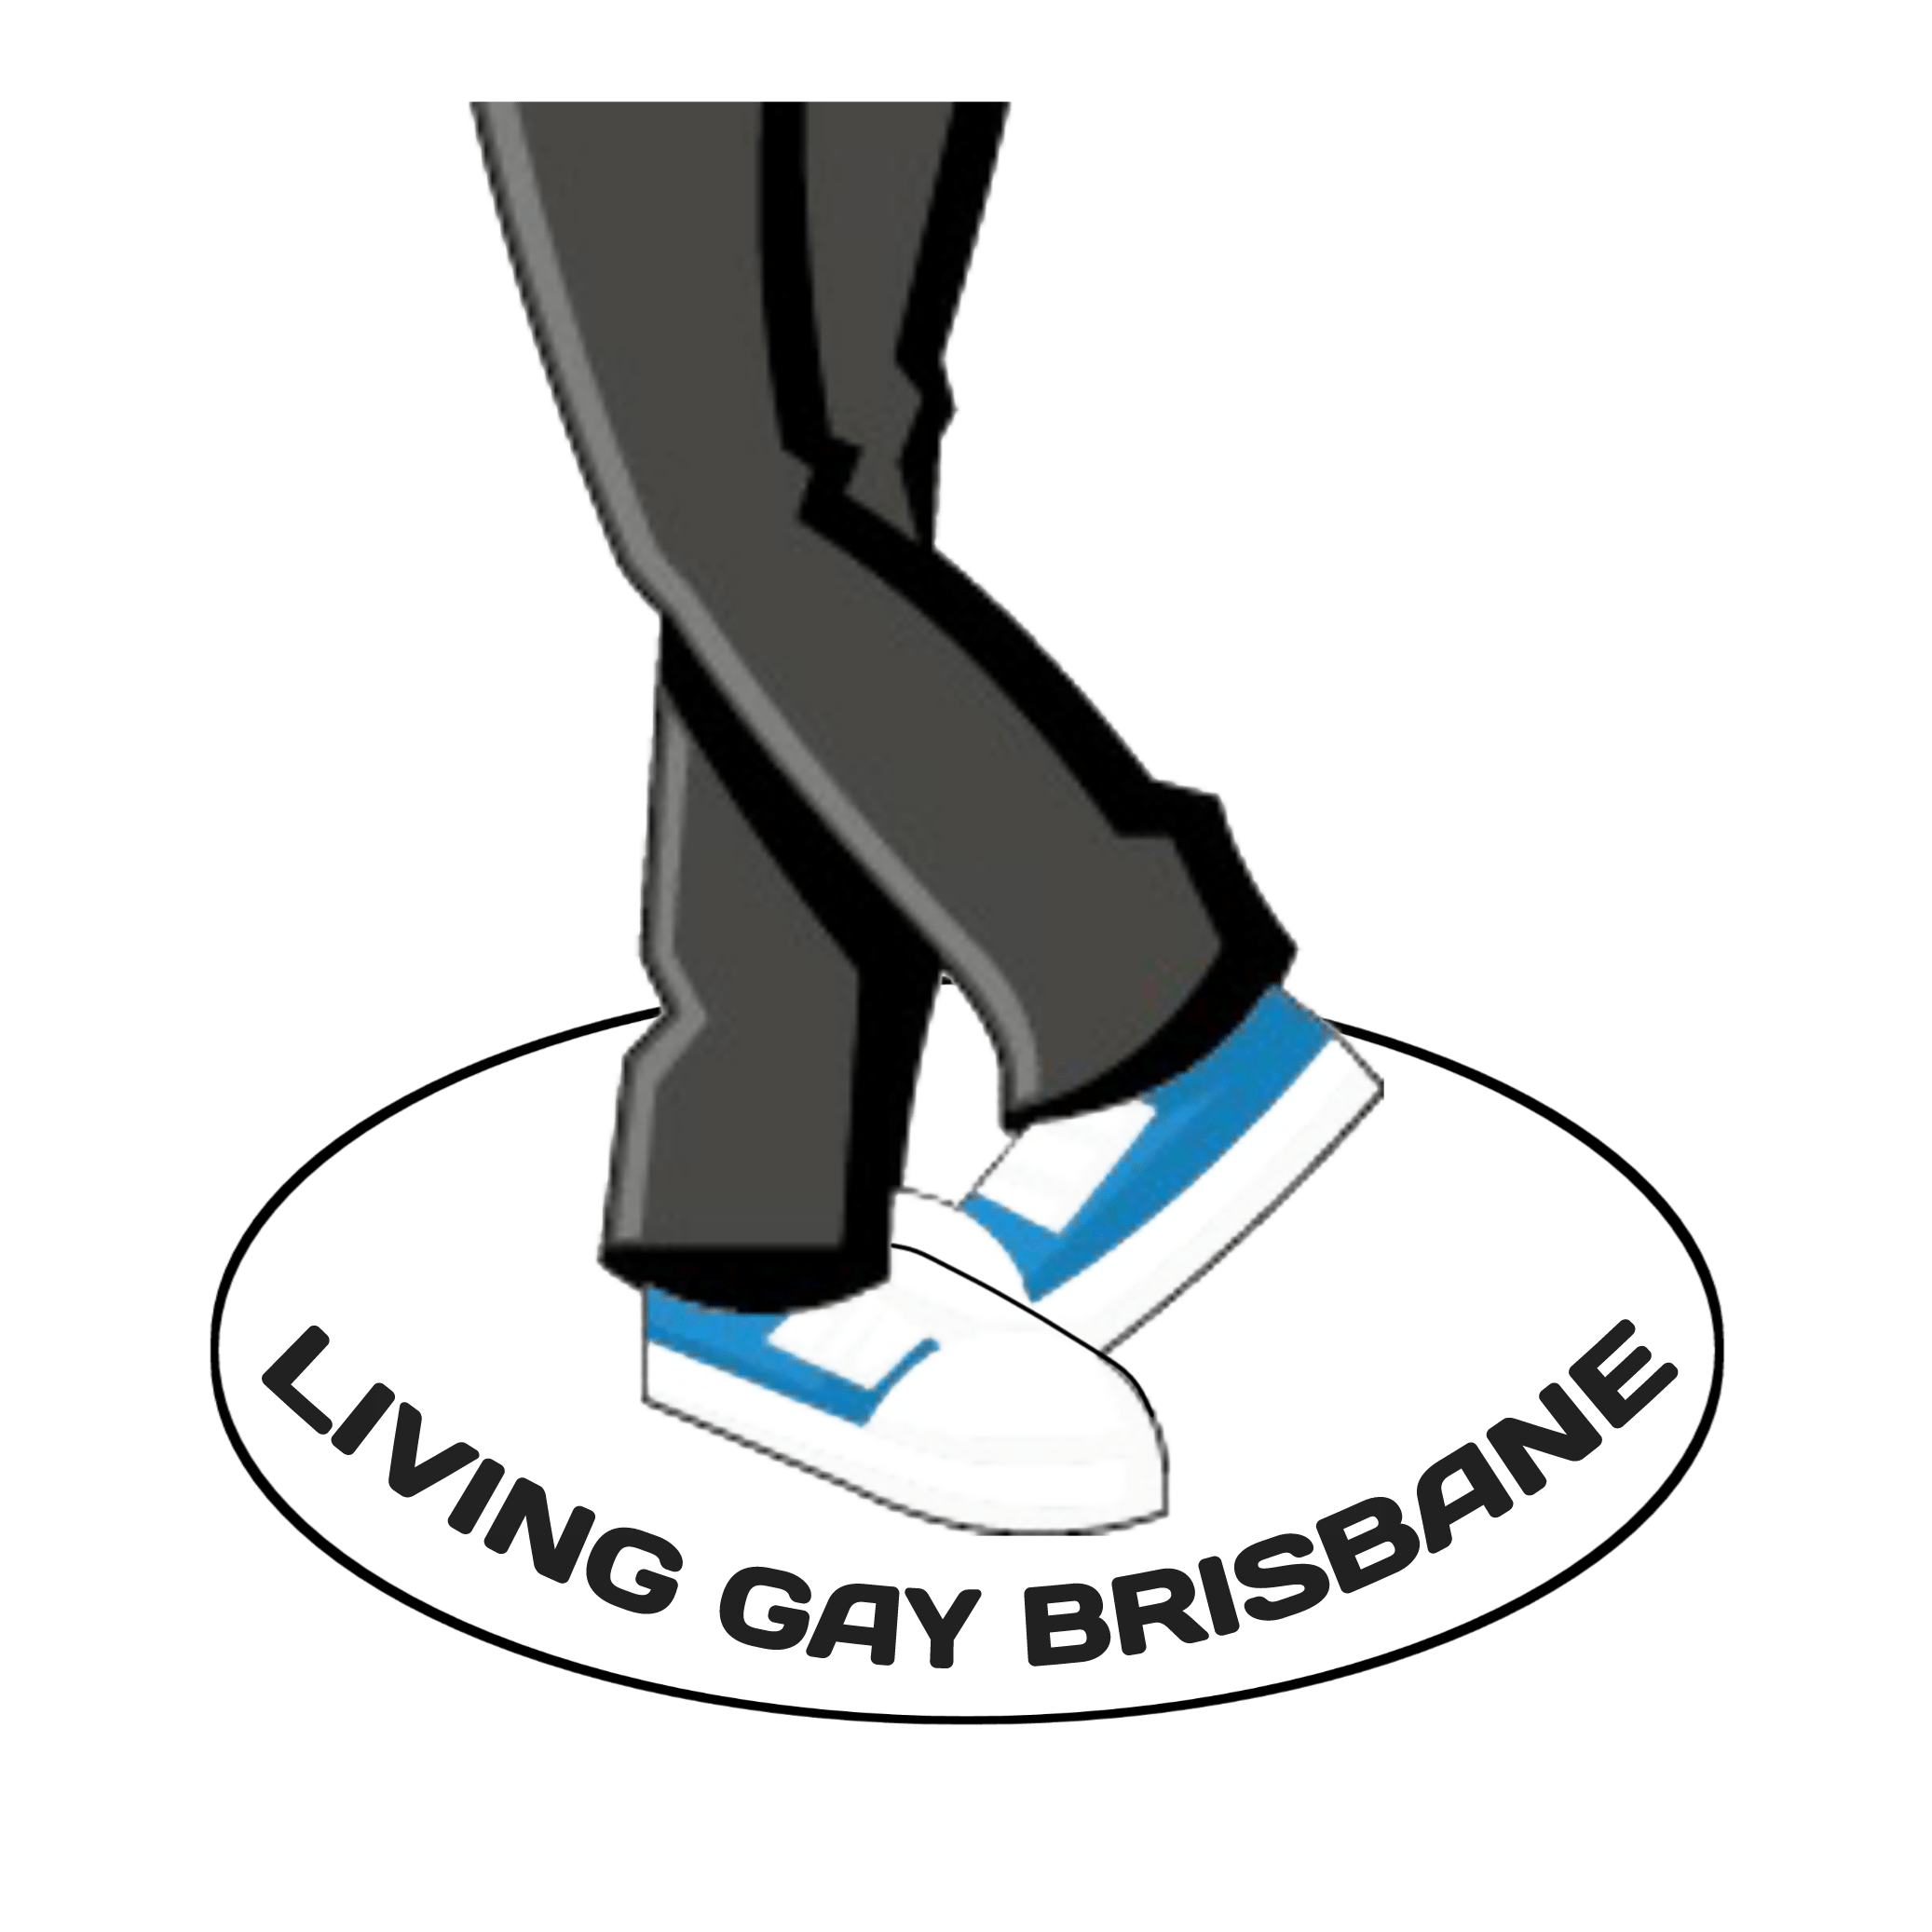 Living Gay Brisbane